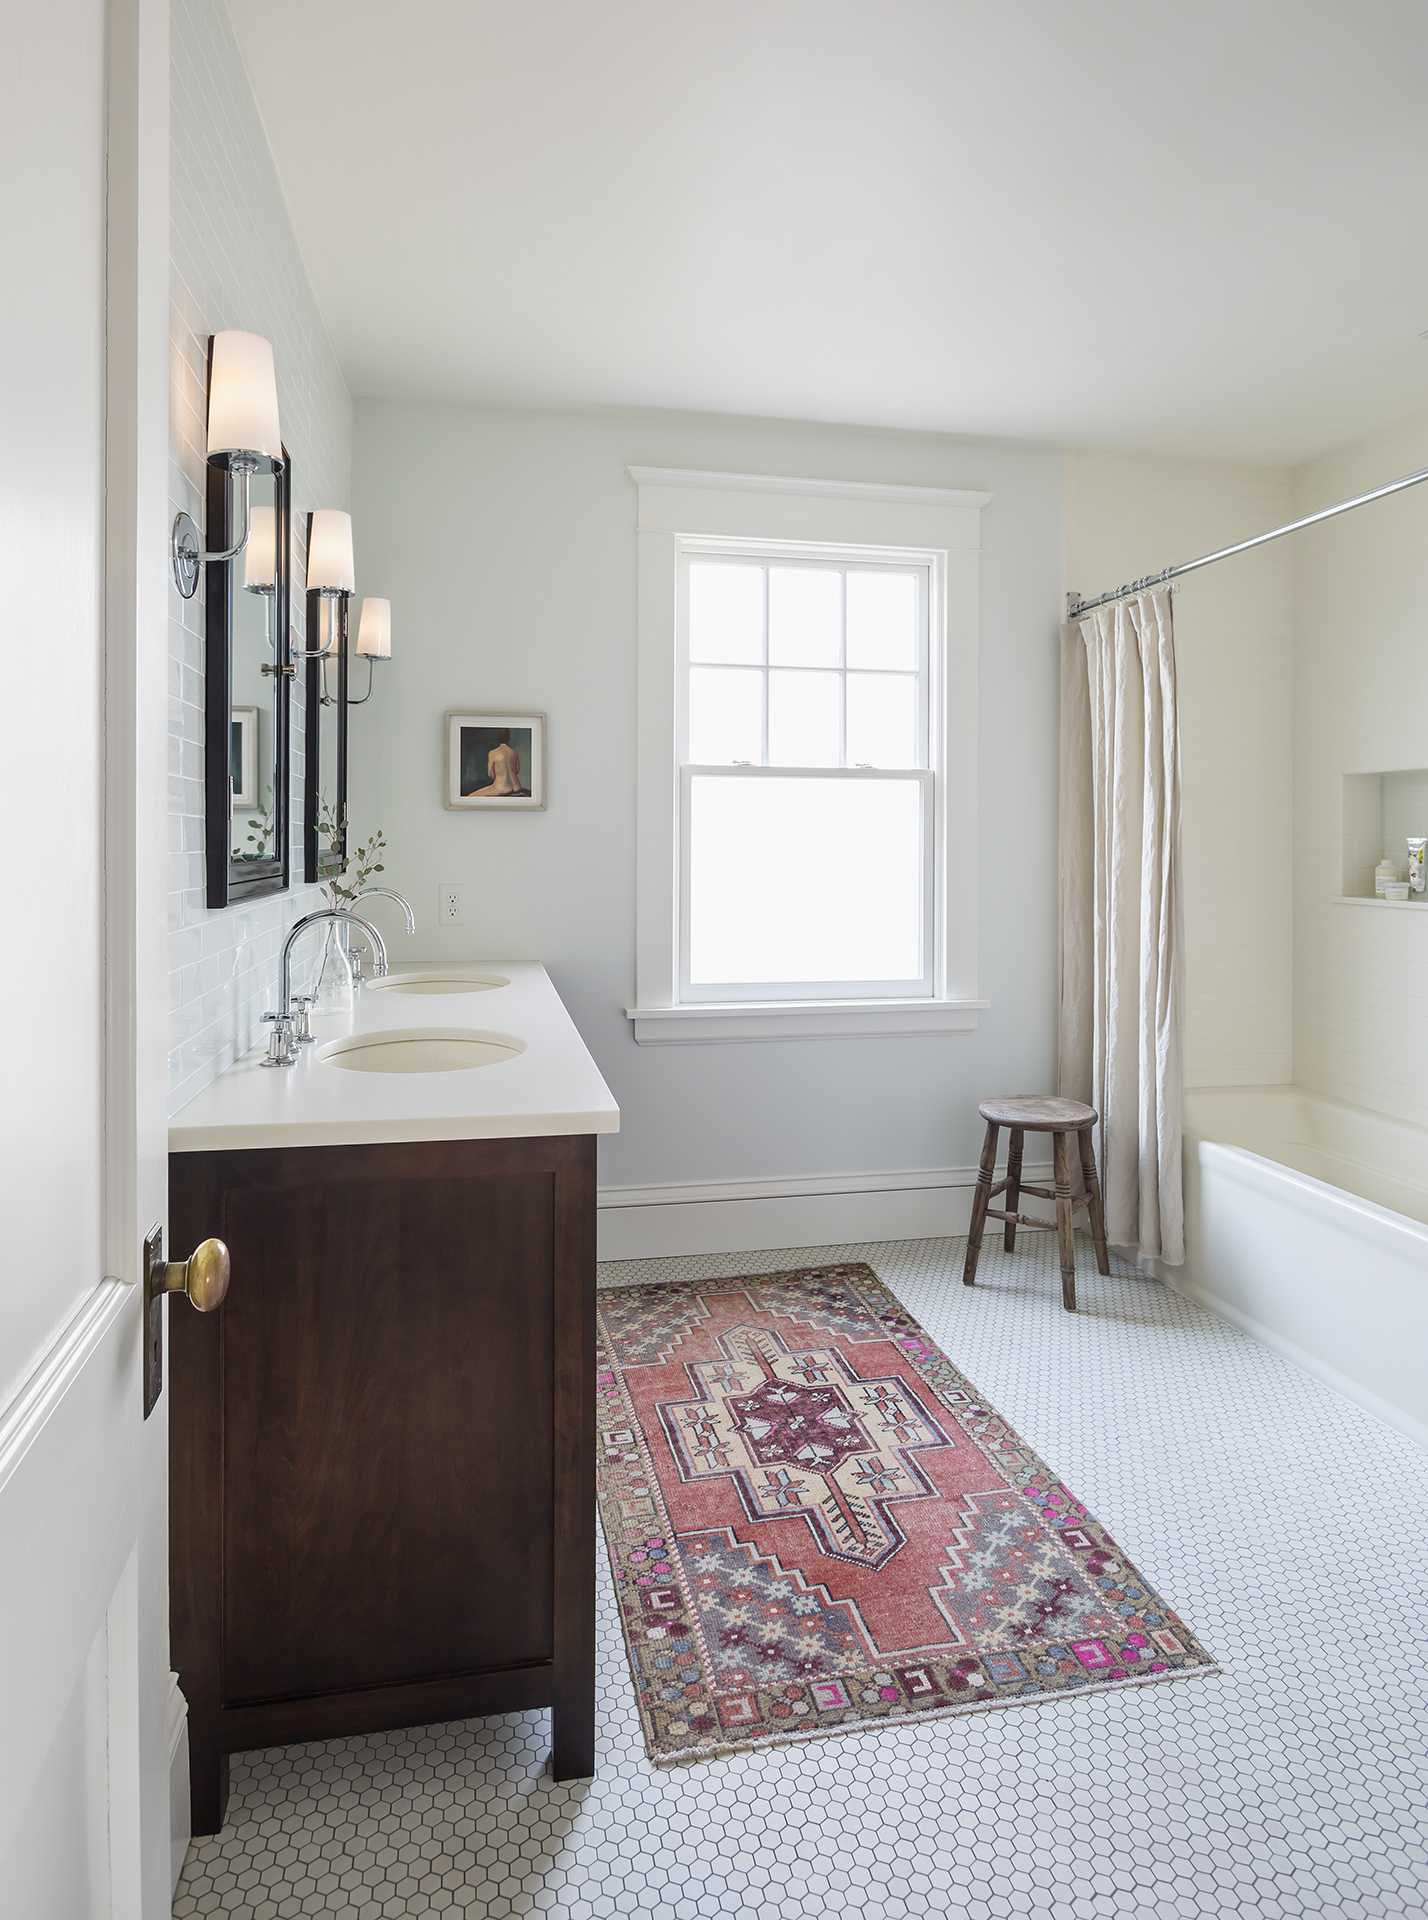 A classic and roomy bathroom took the place of what was once a small sewing or craft room.